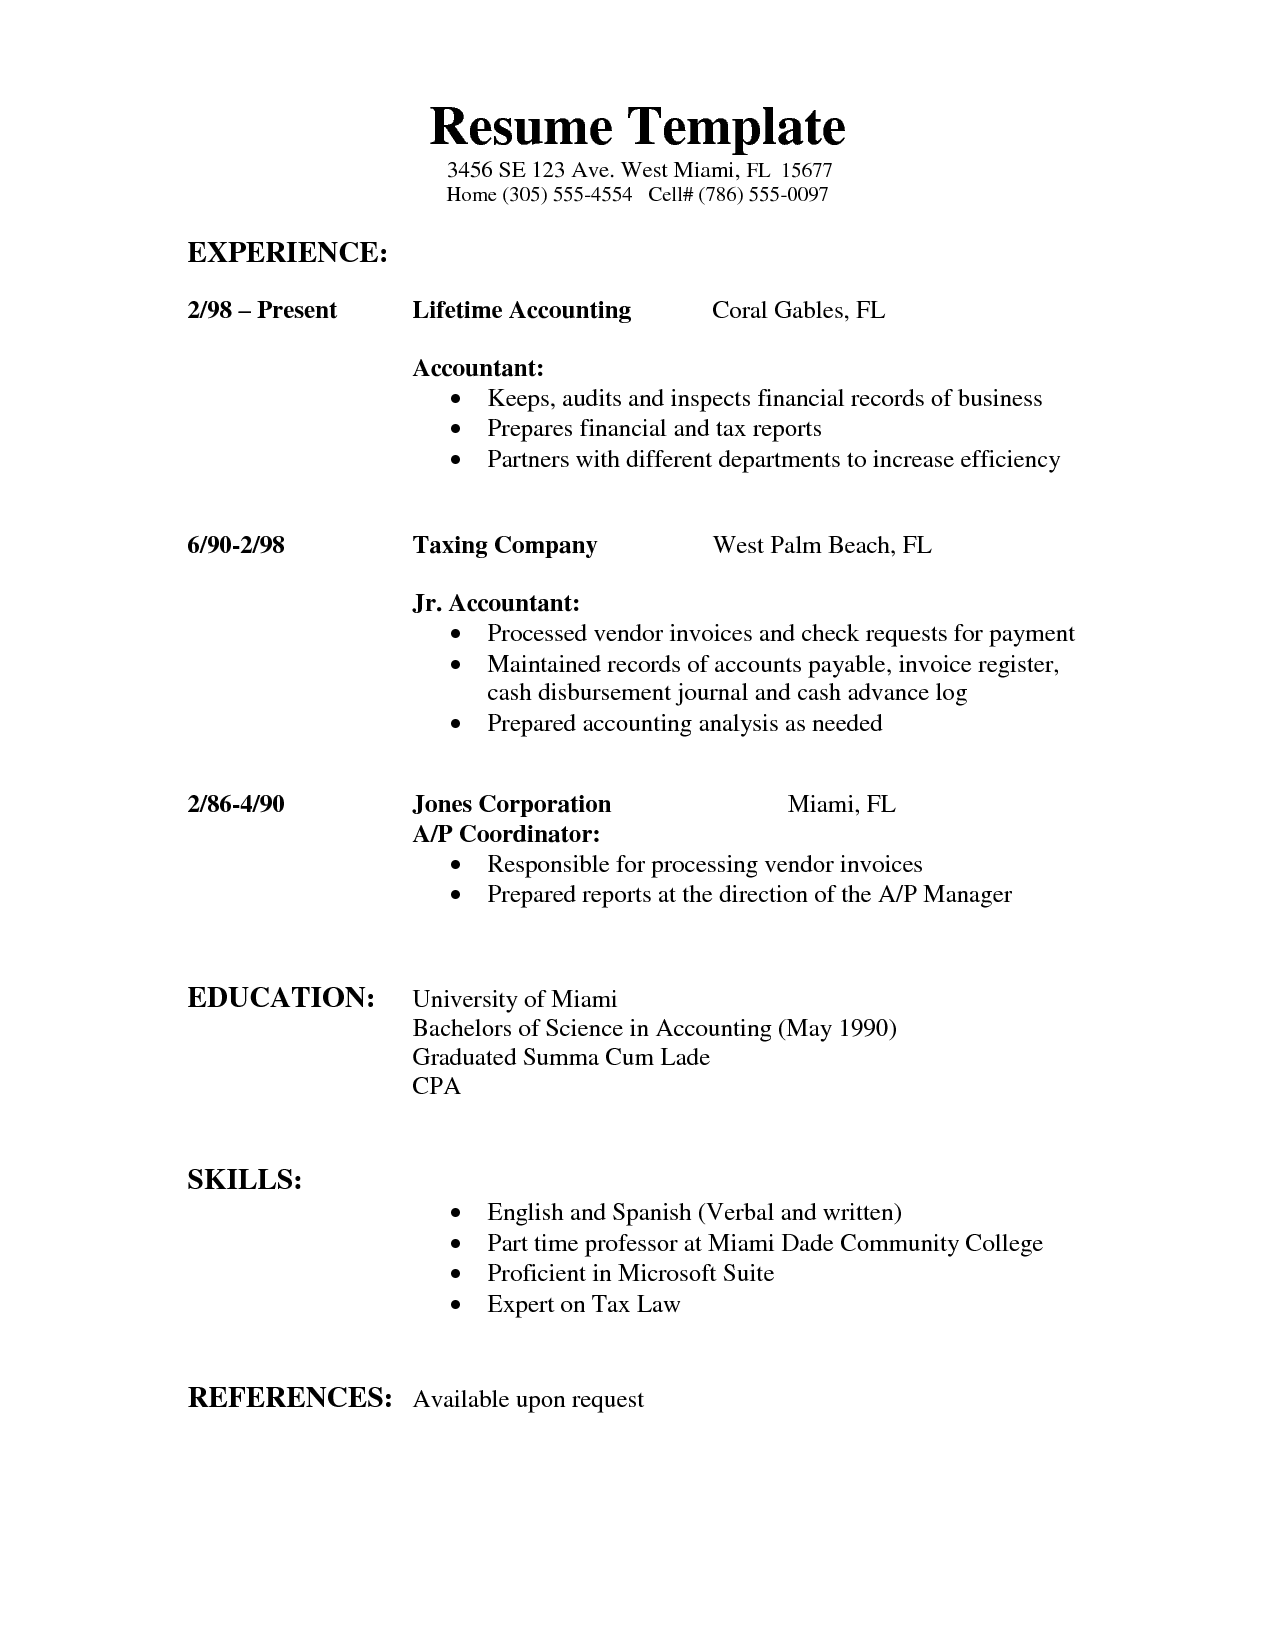 resumes resume examples projects to try example professional resume template